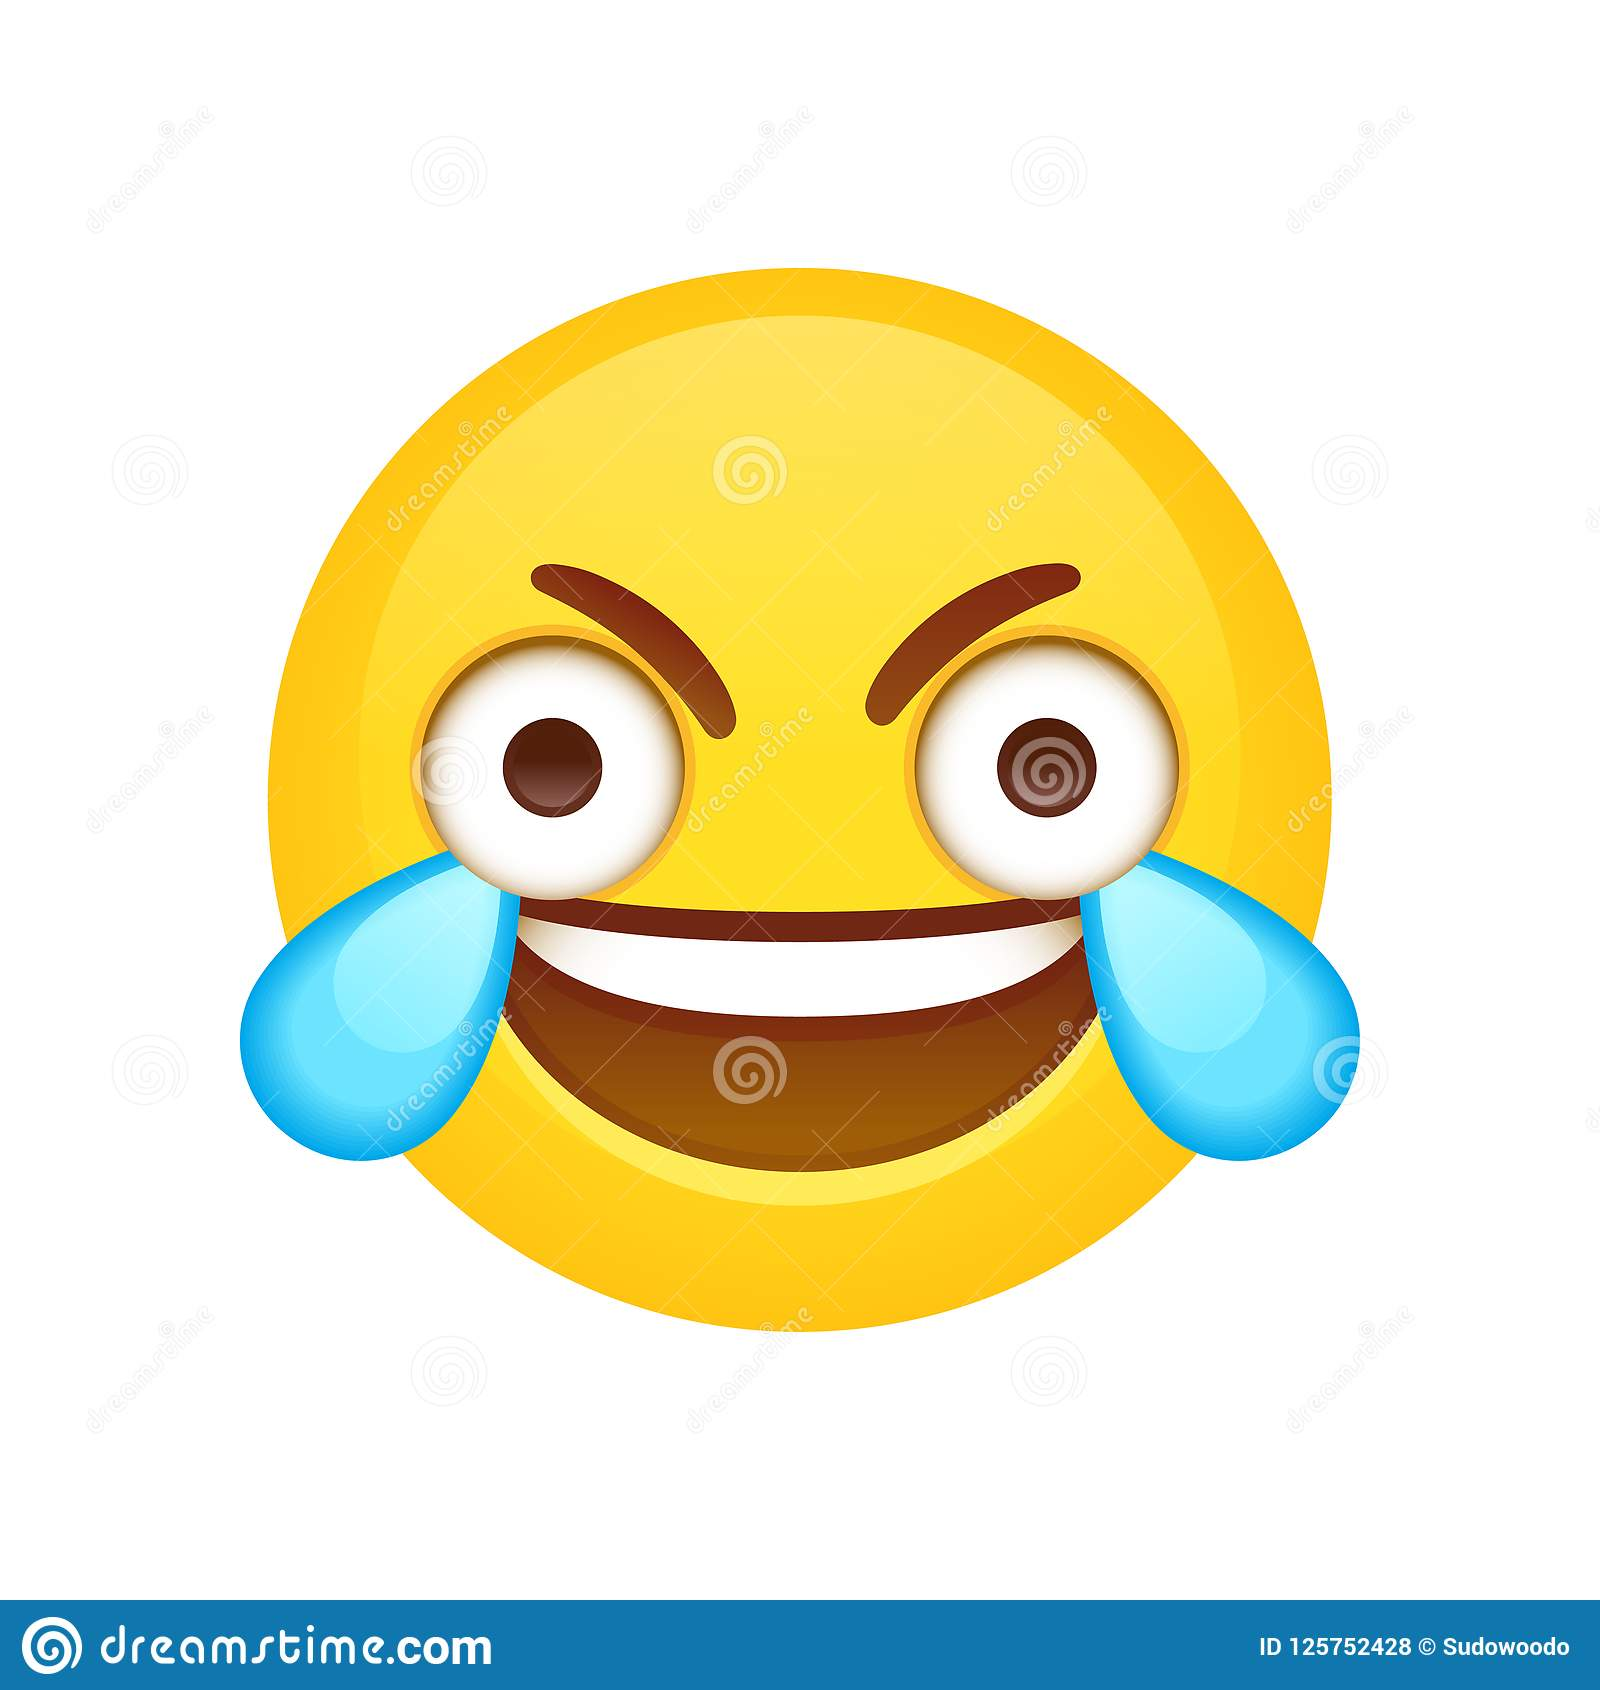 Emoji Laughing Face Meme The Emoji - photo#18